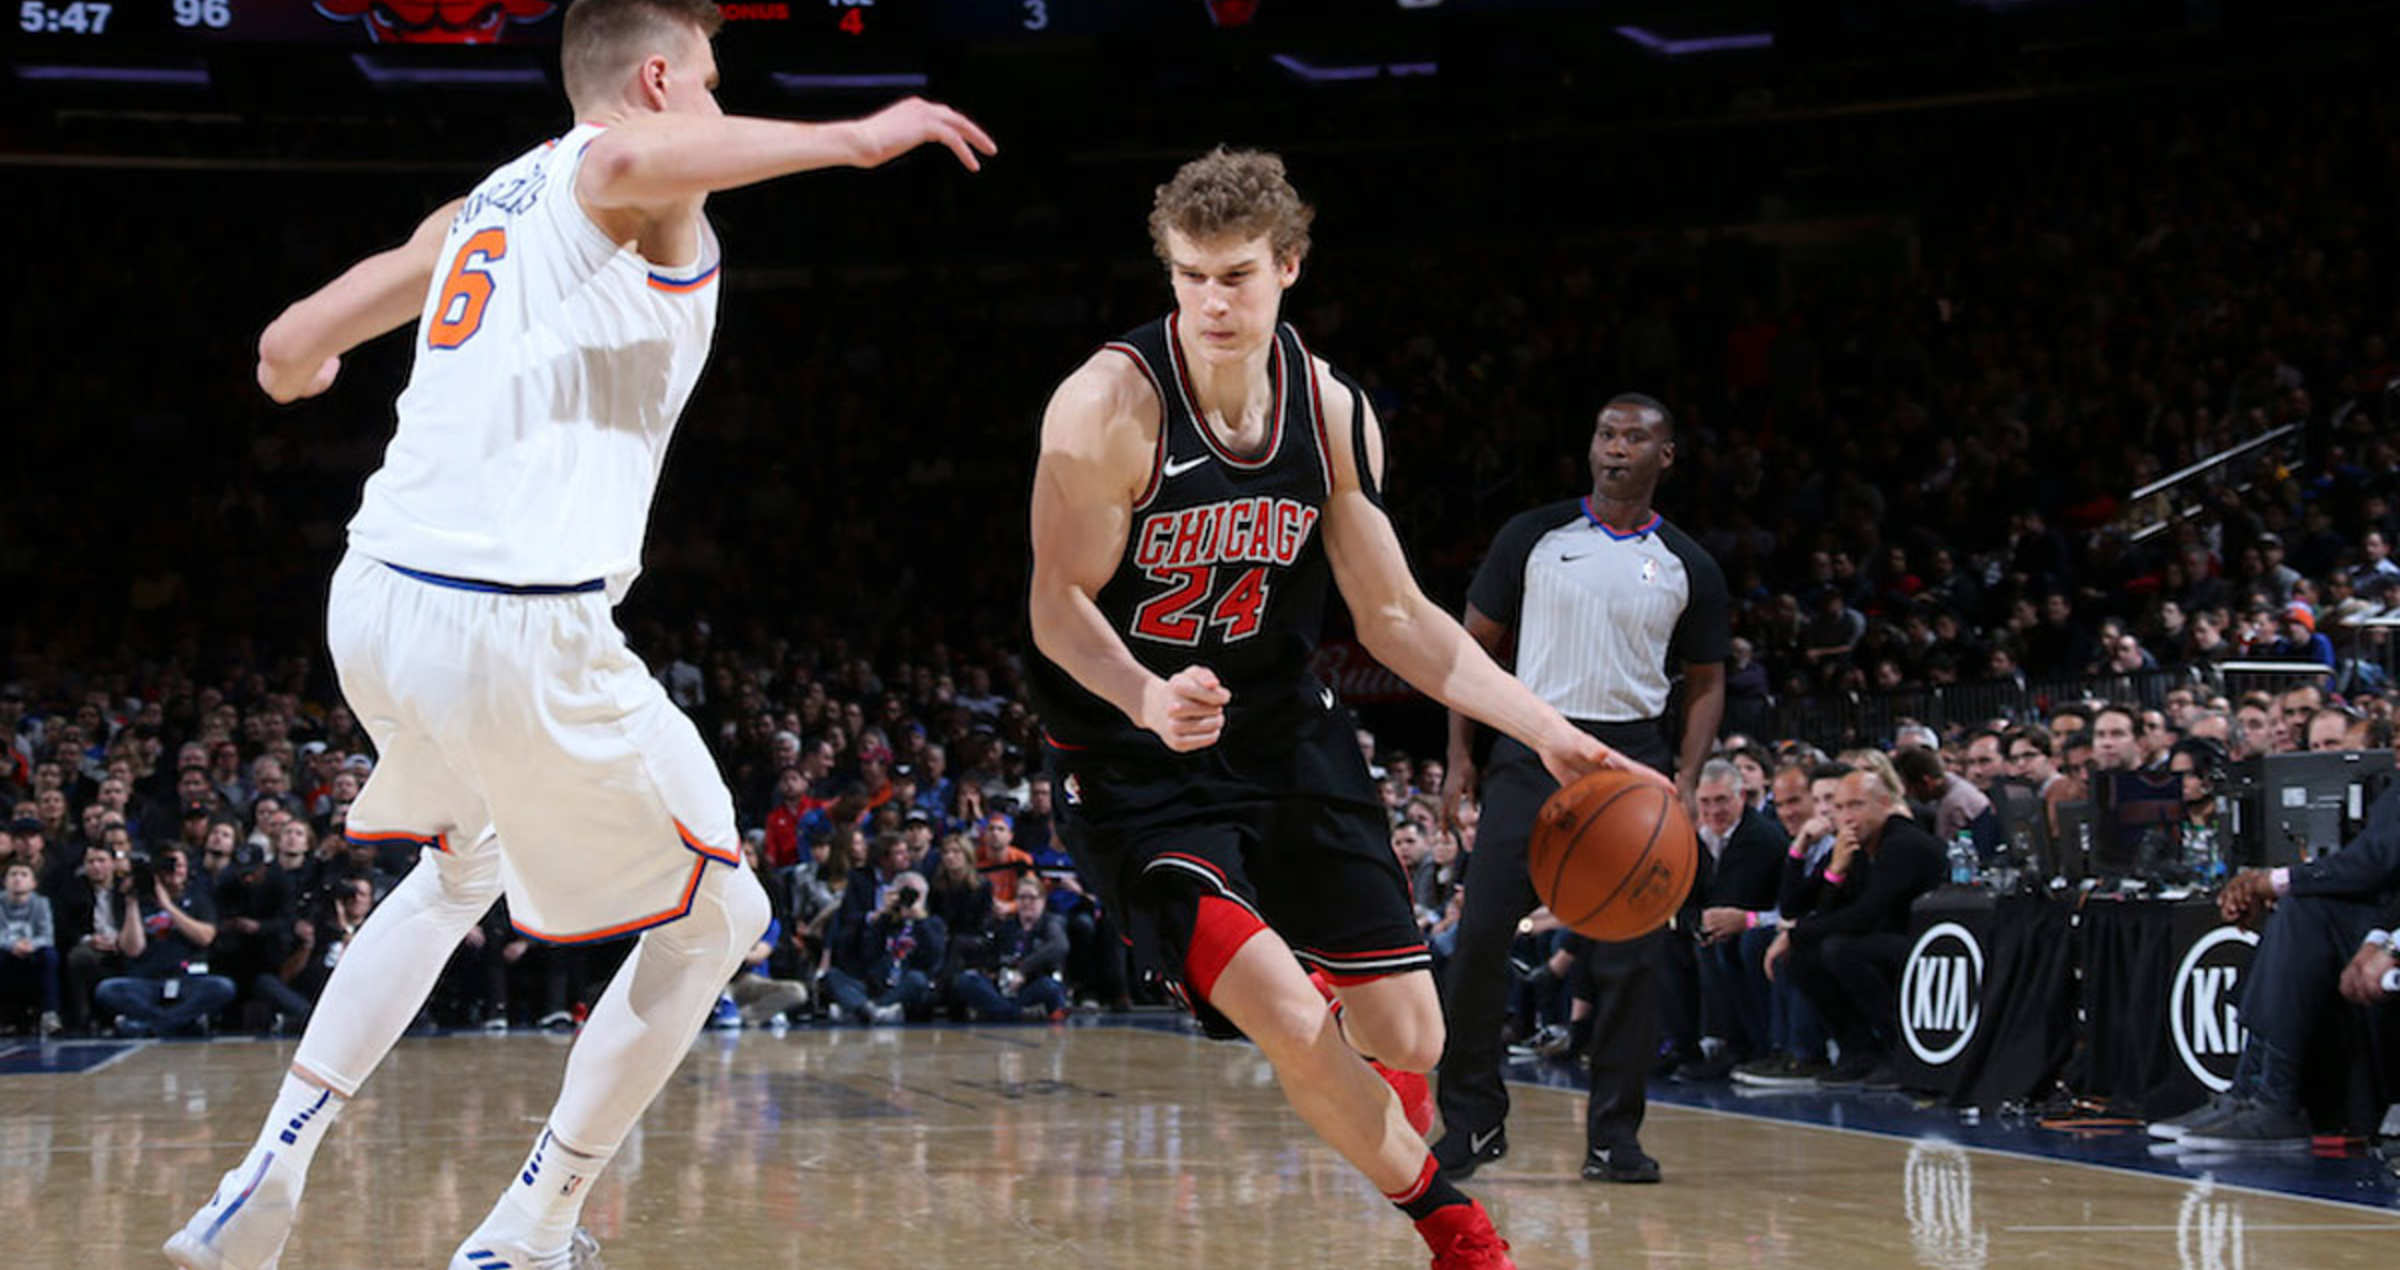 Markkanen drives the ball